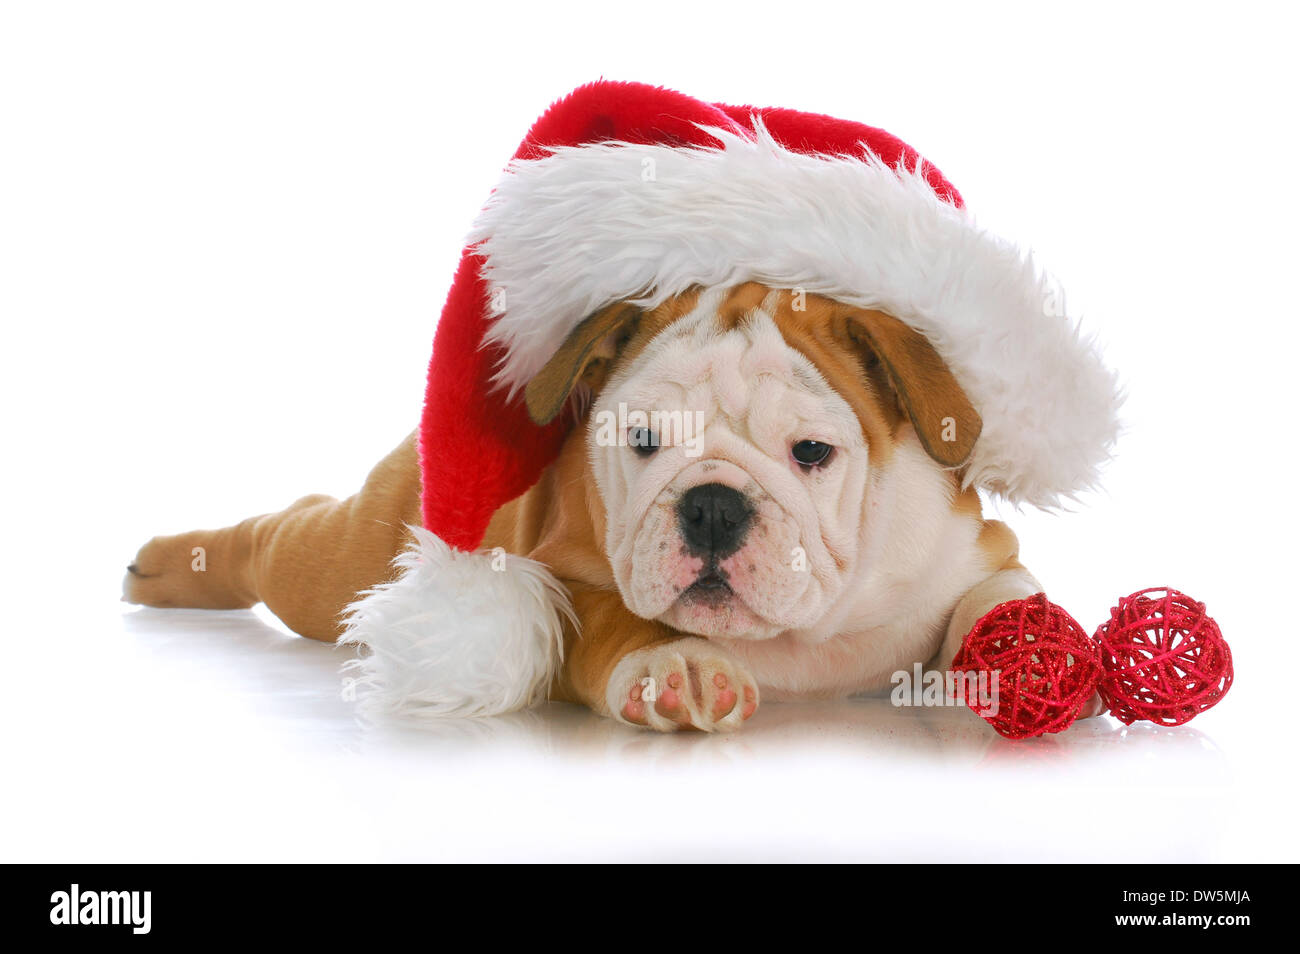 Newborn Puppy English Bulldog Puppy High Resolution Stock Photography And Images Alamy